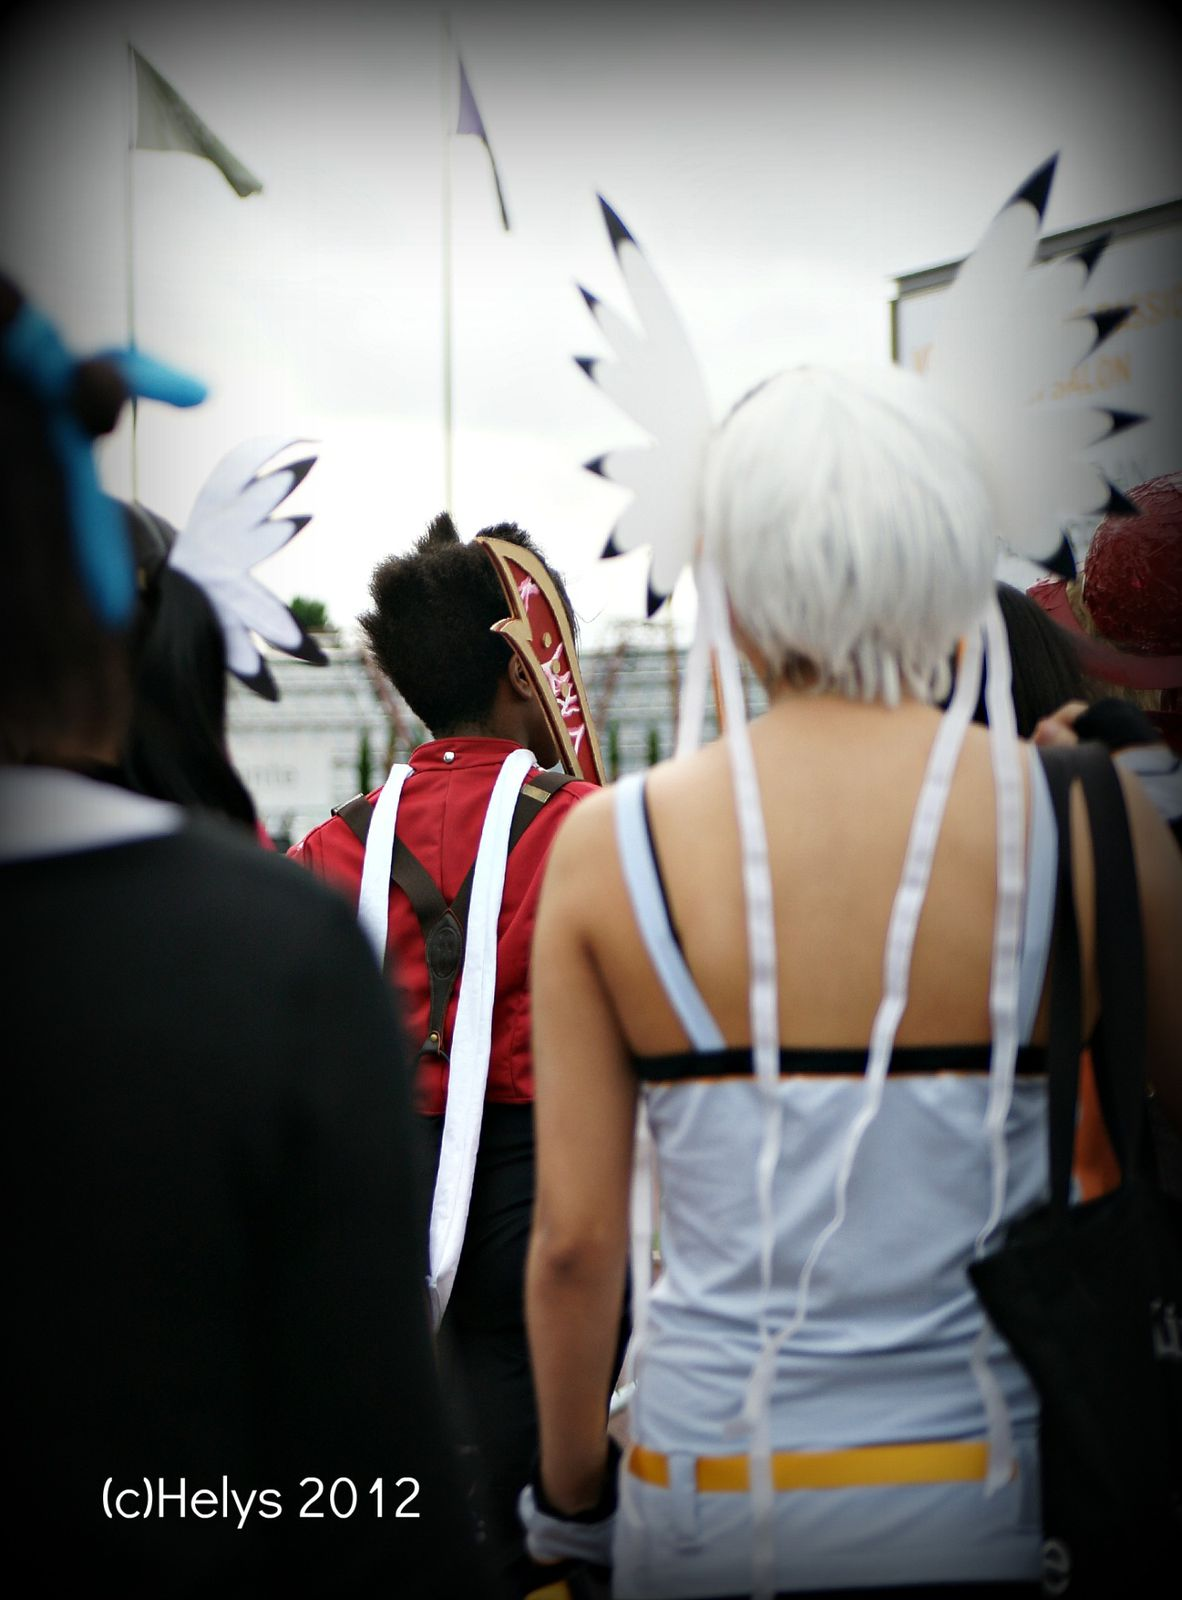 Photos (c)Helys japan expo 2012 ~A SUIVRE ~